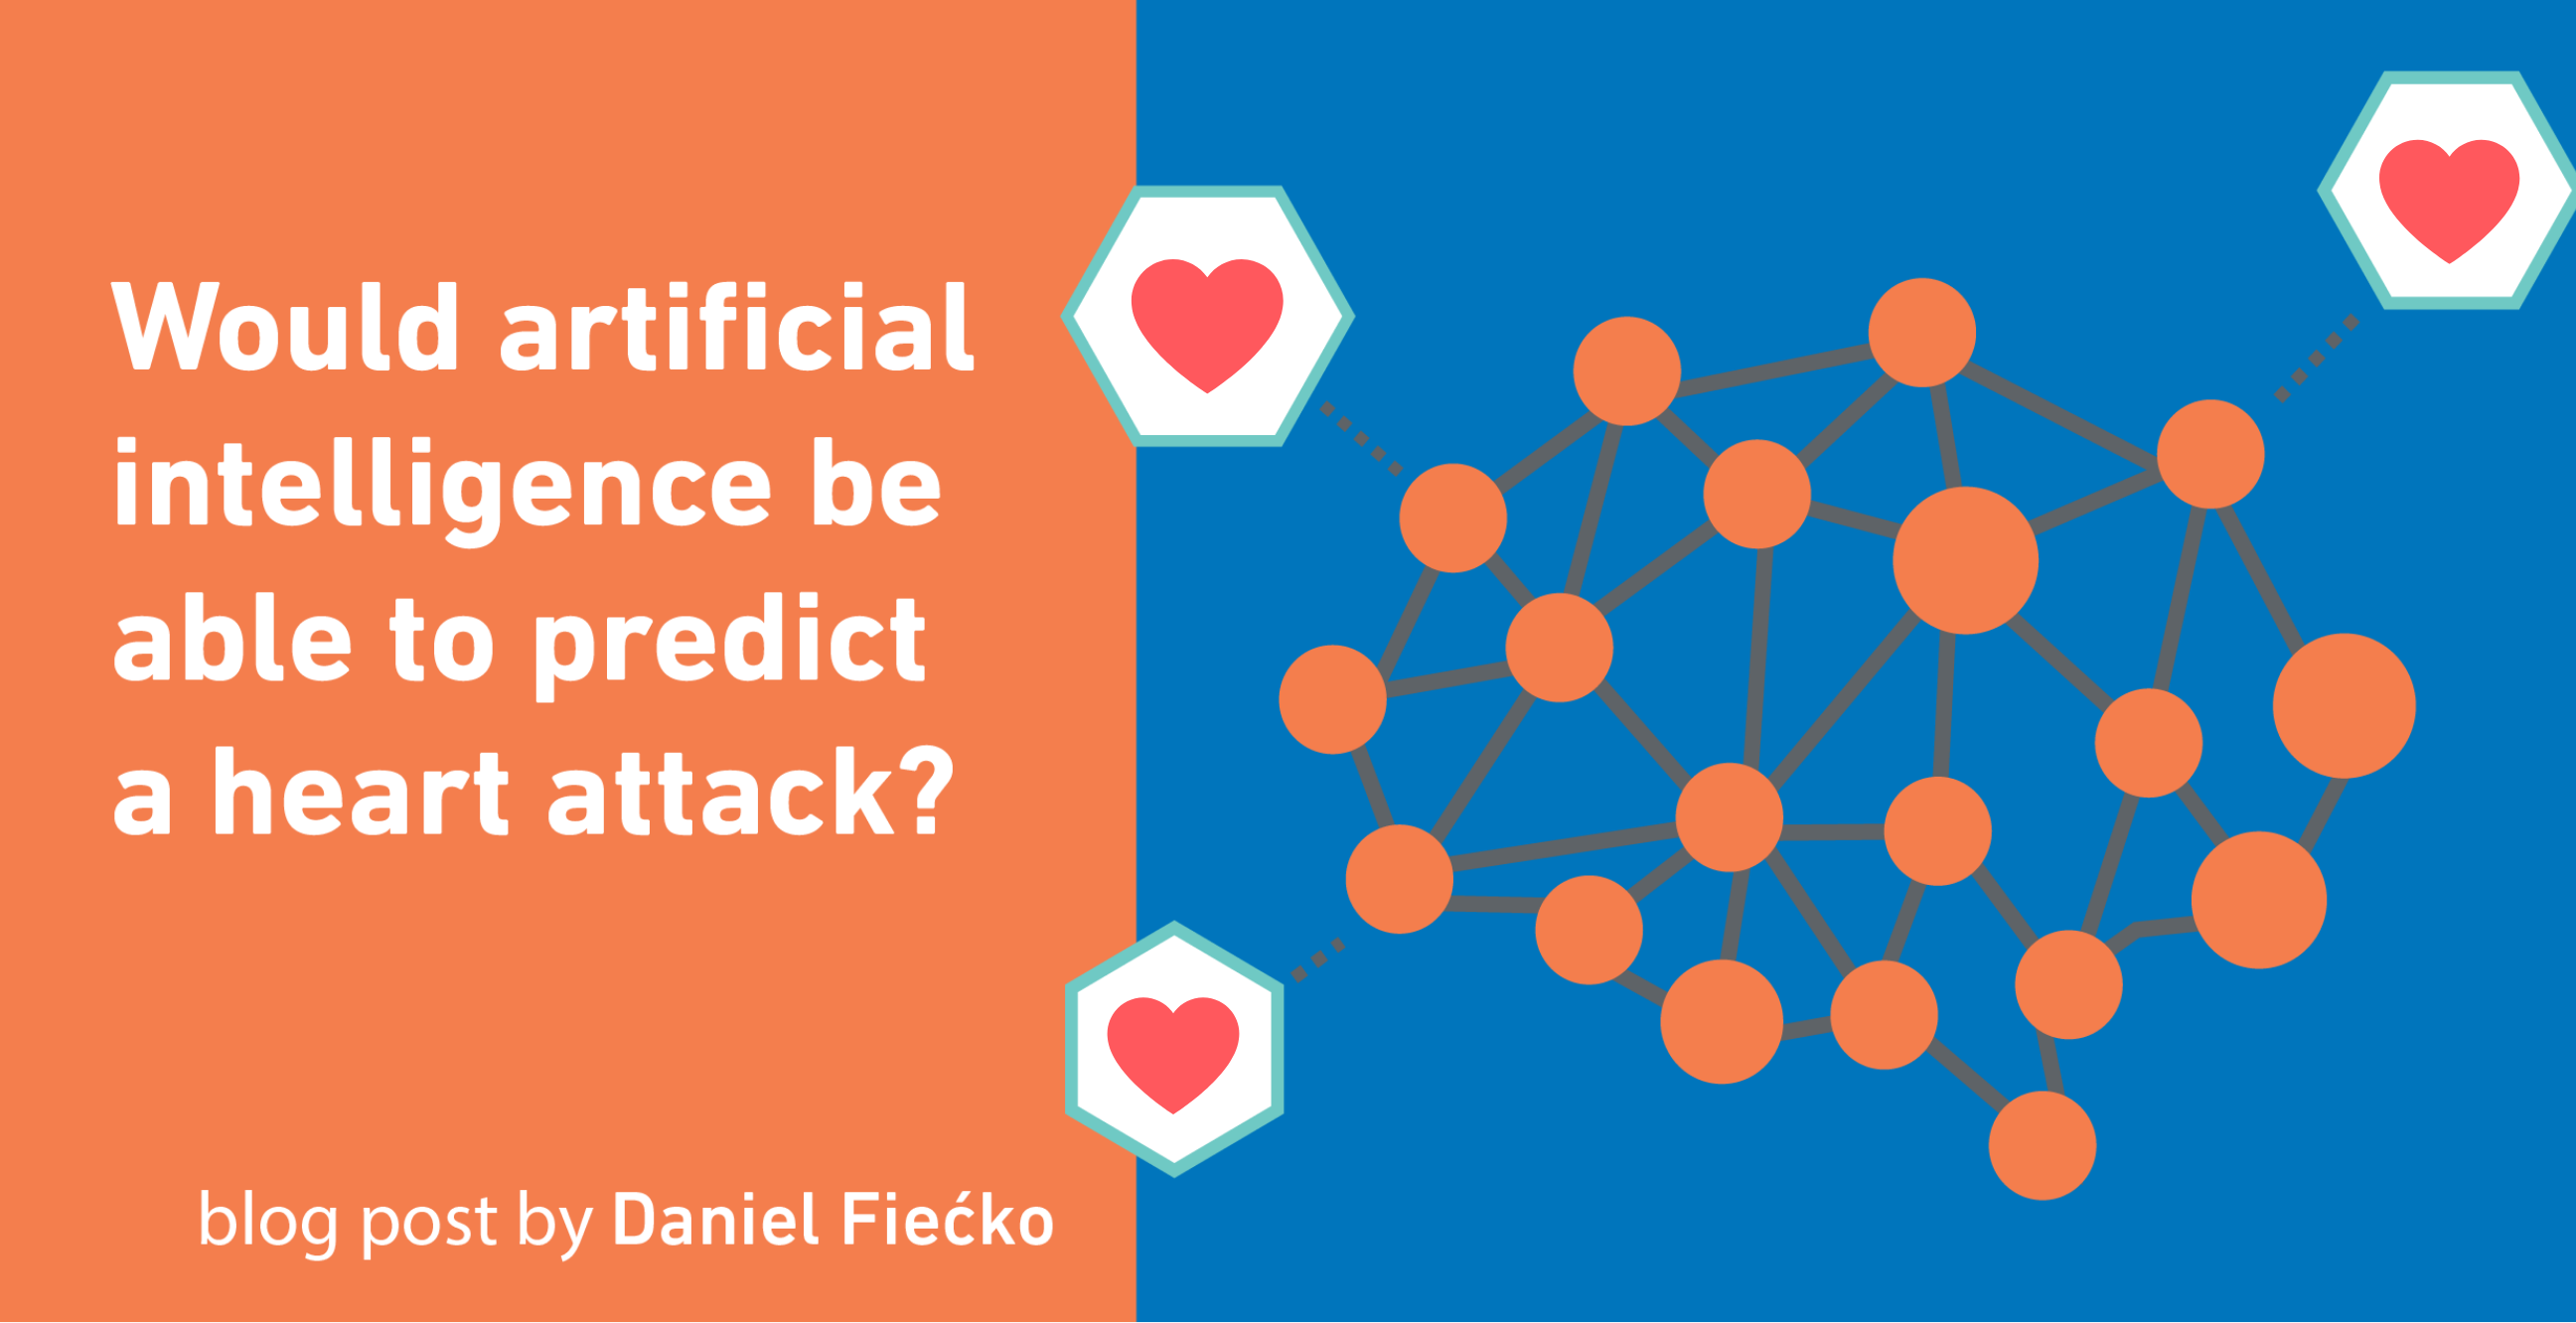 Would artificial intelligence be able to predict a heart